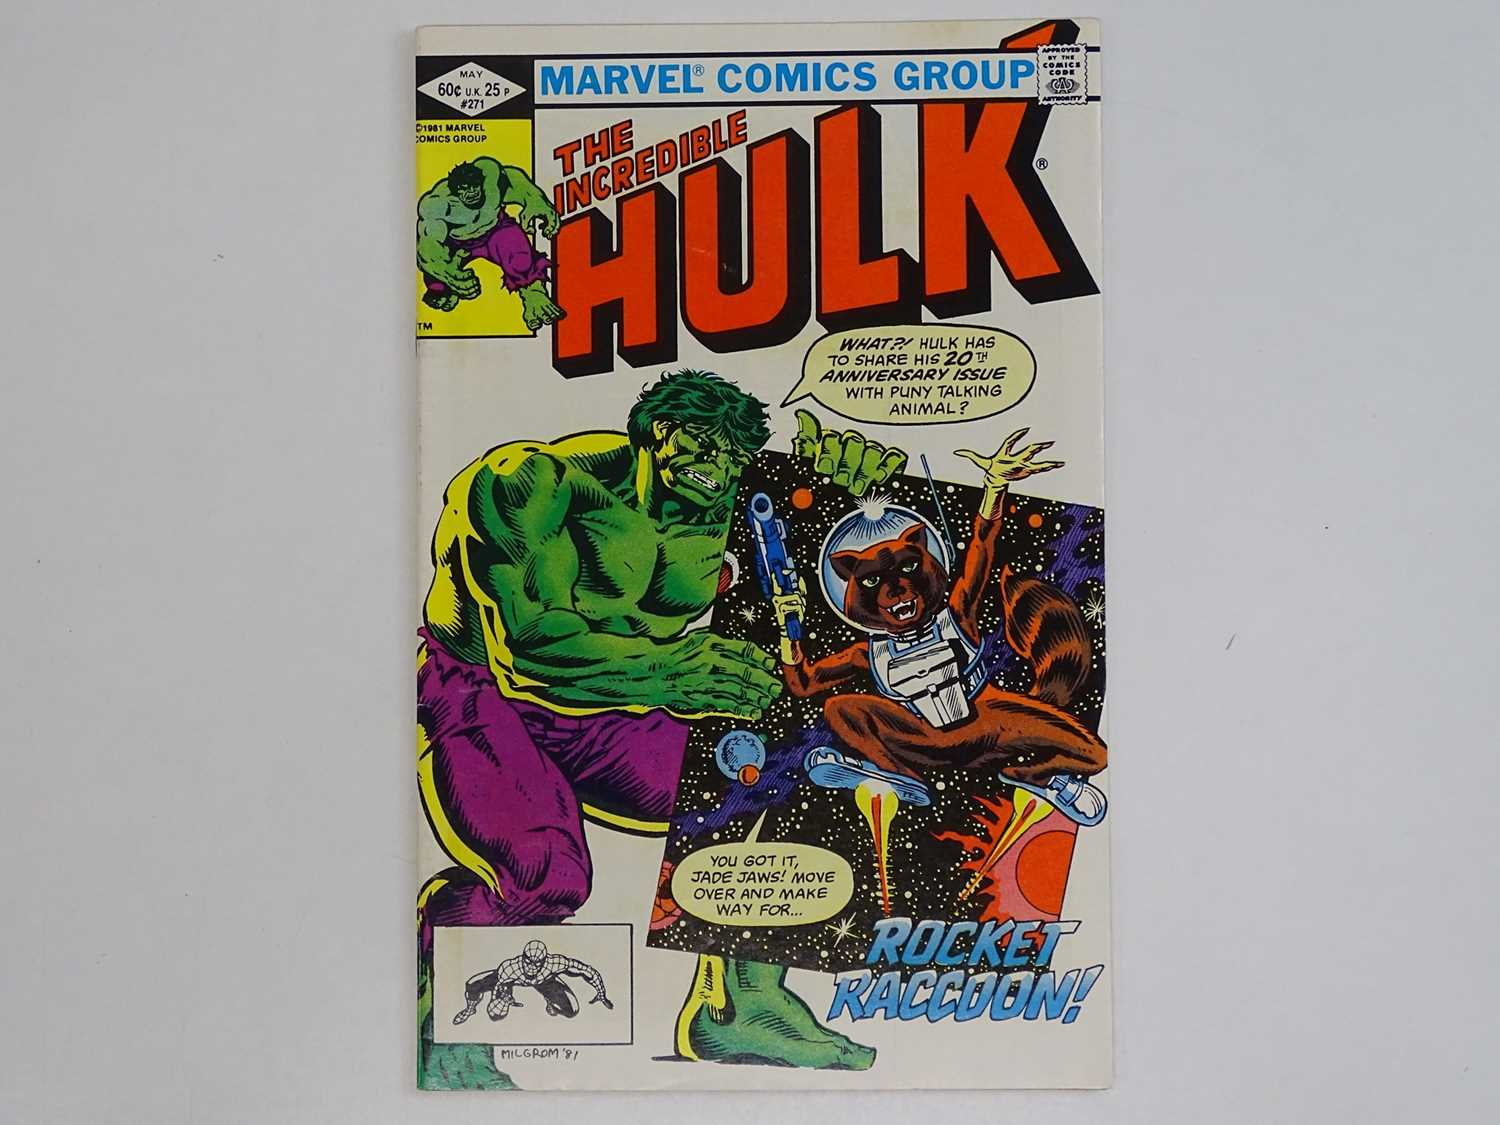 INCREDIBLE HULK #271 - (1981 - MARVEL) - First comic book appearance of Rocket Raccoon (Guardians of